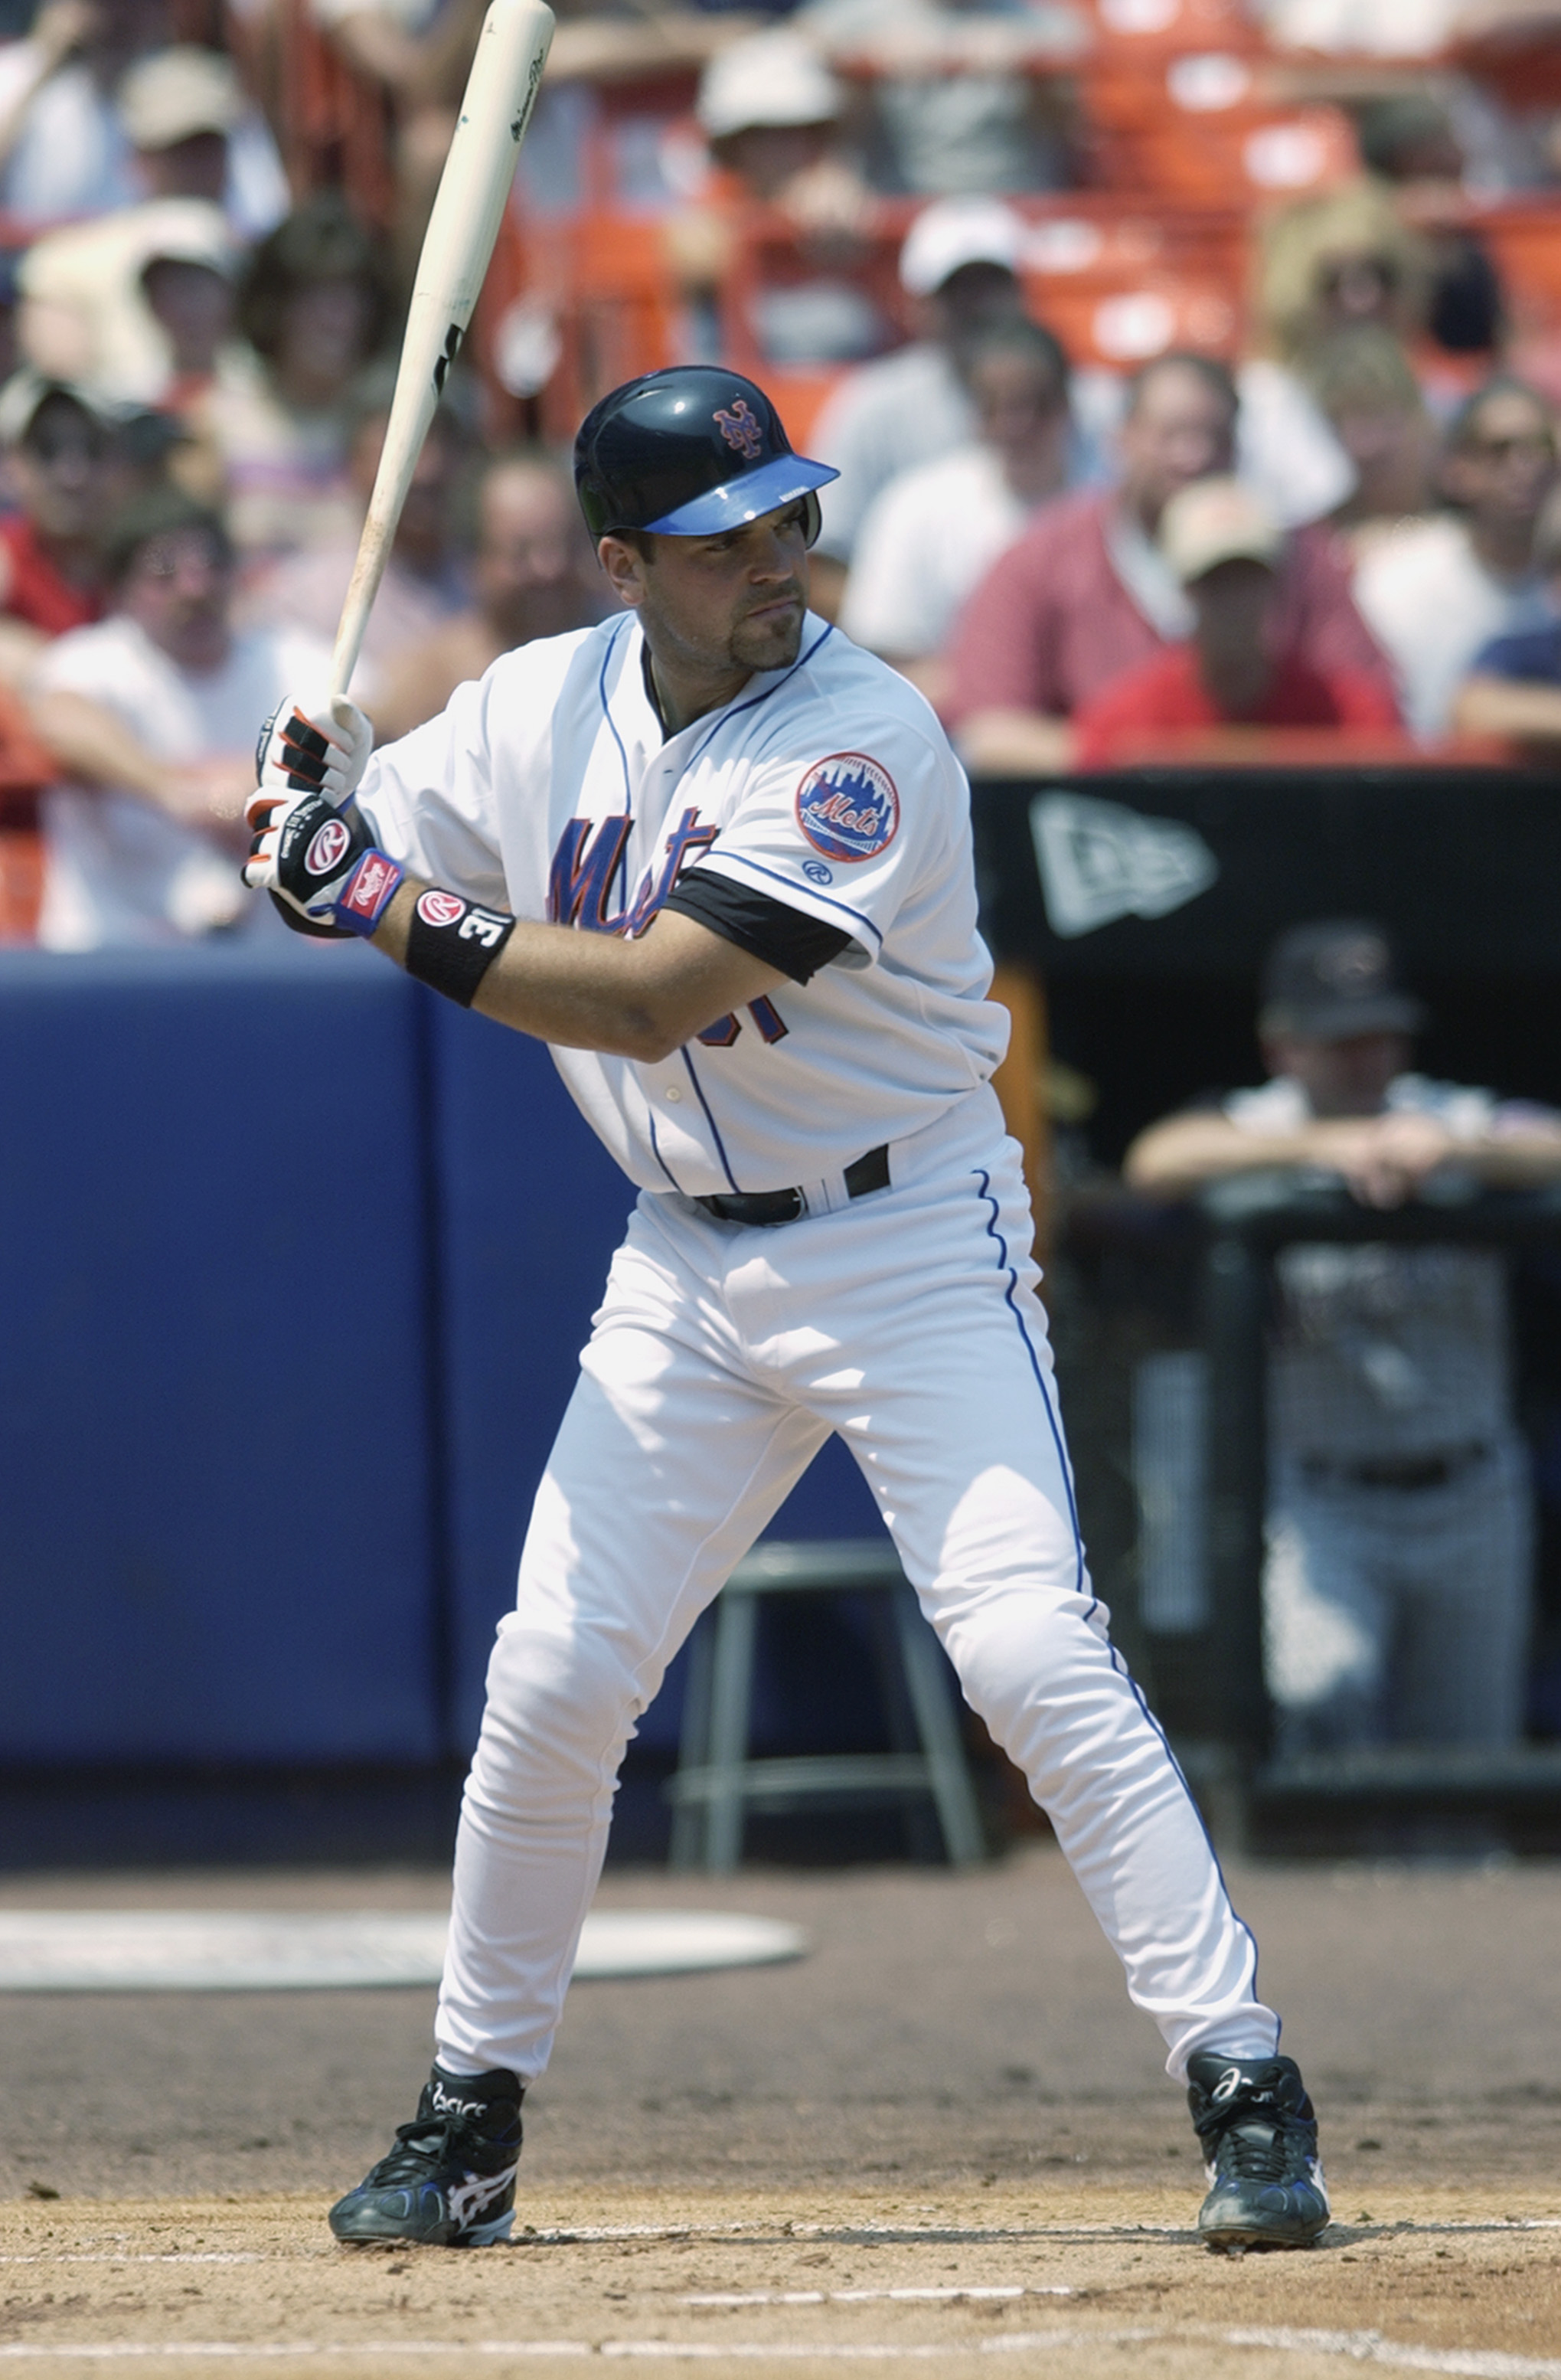 FLUSHING, NY - AUGUST 4:  Catcher Mike Piazza #31 of the New York Mets waits for the pitch during the MLB game against the Arizona Diamondbacks on August 4, 2002 at Shea Stadium in Flushing, New York. The Diamondbacks won 12-7. (Photo by Ezra Shaw/Getty I